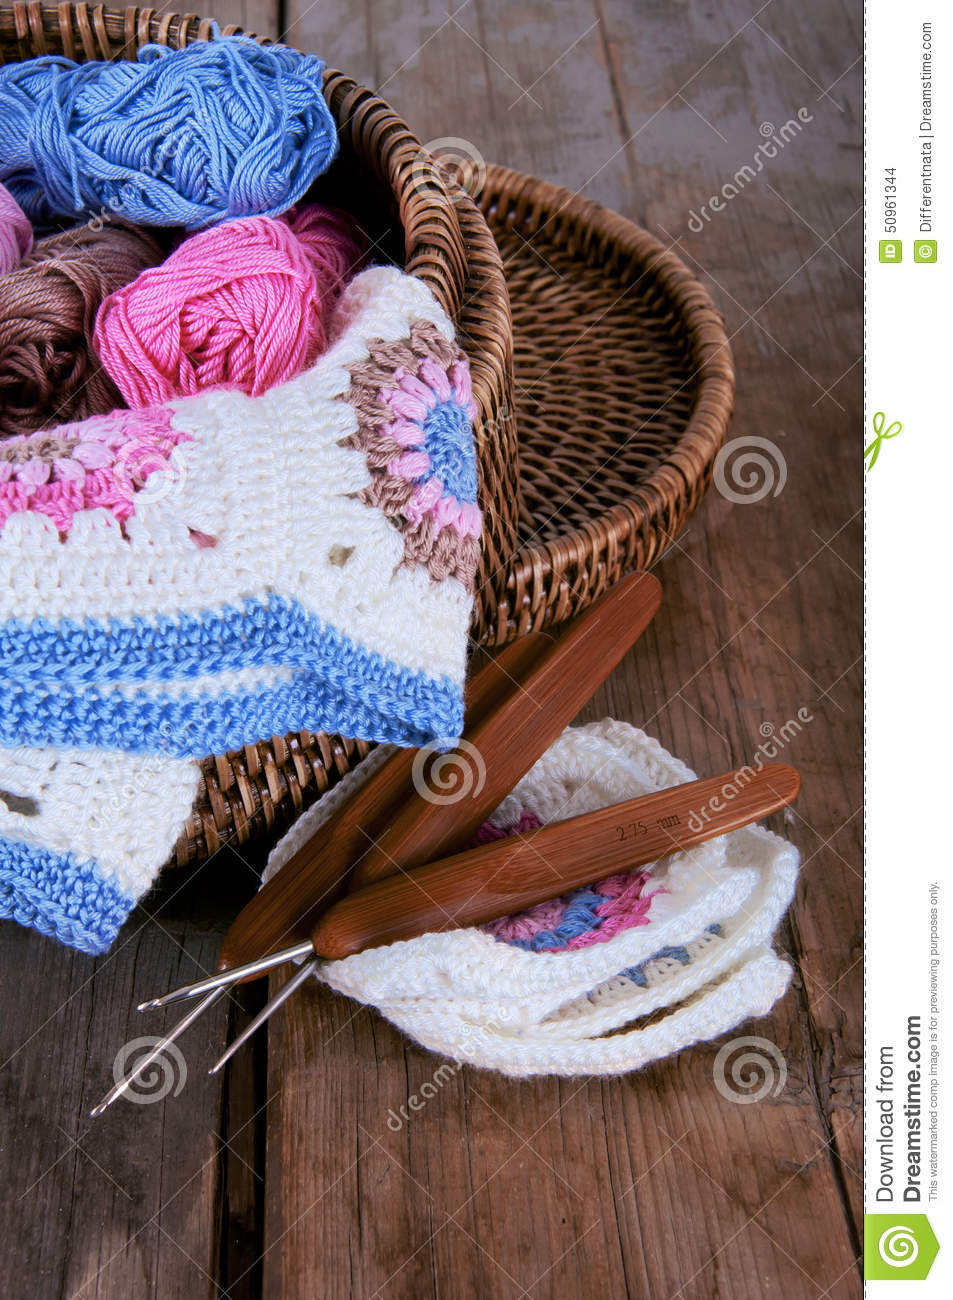 Box of yarn and granny square blanket with crochet hooks